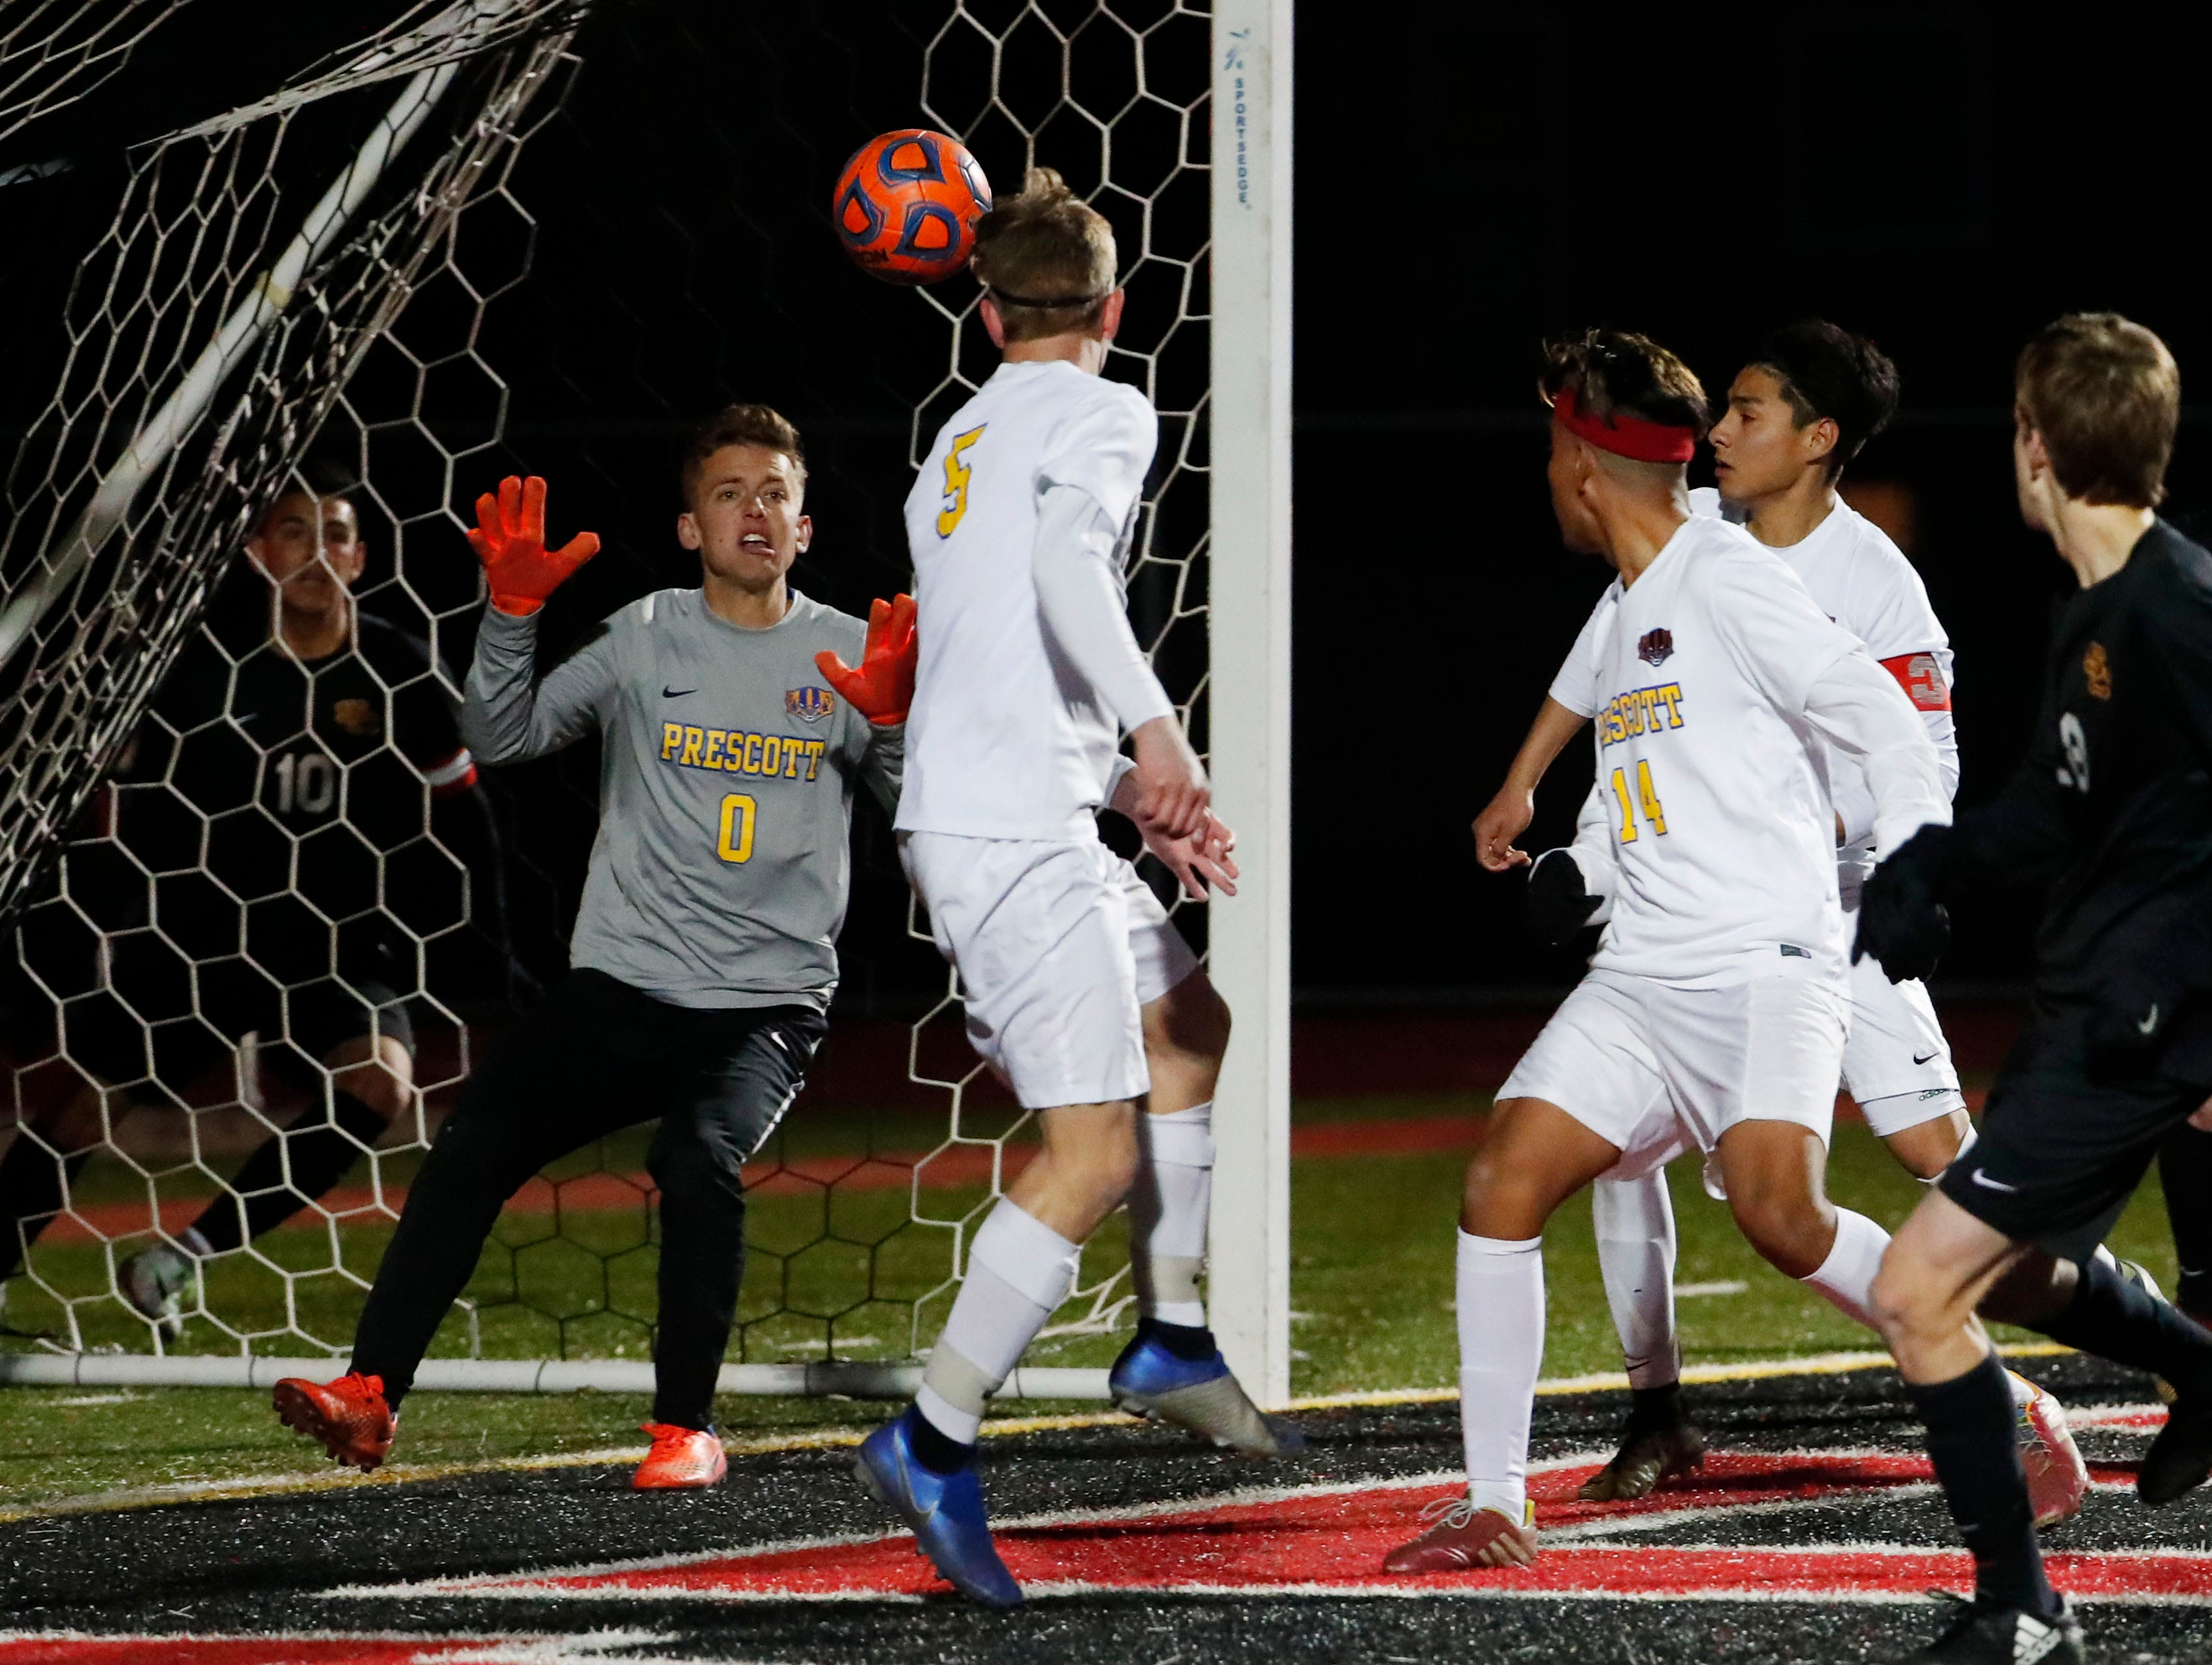 Prescott goal keeper Ryan Peeples makes a save against Salpointe during the Boys 4A State Championship soccer game in Gilbert Feb. 19, 2019.